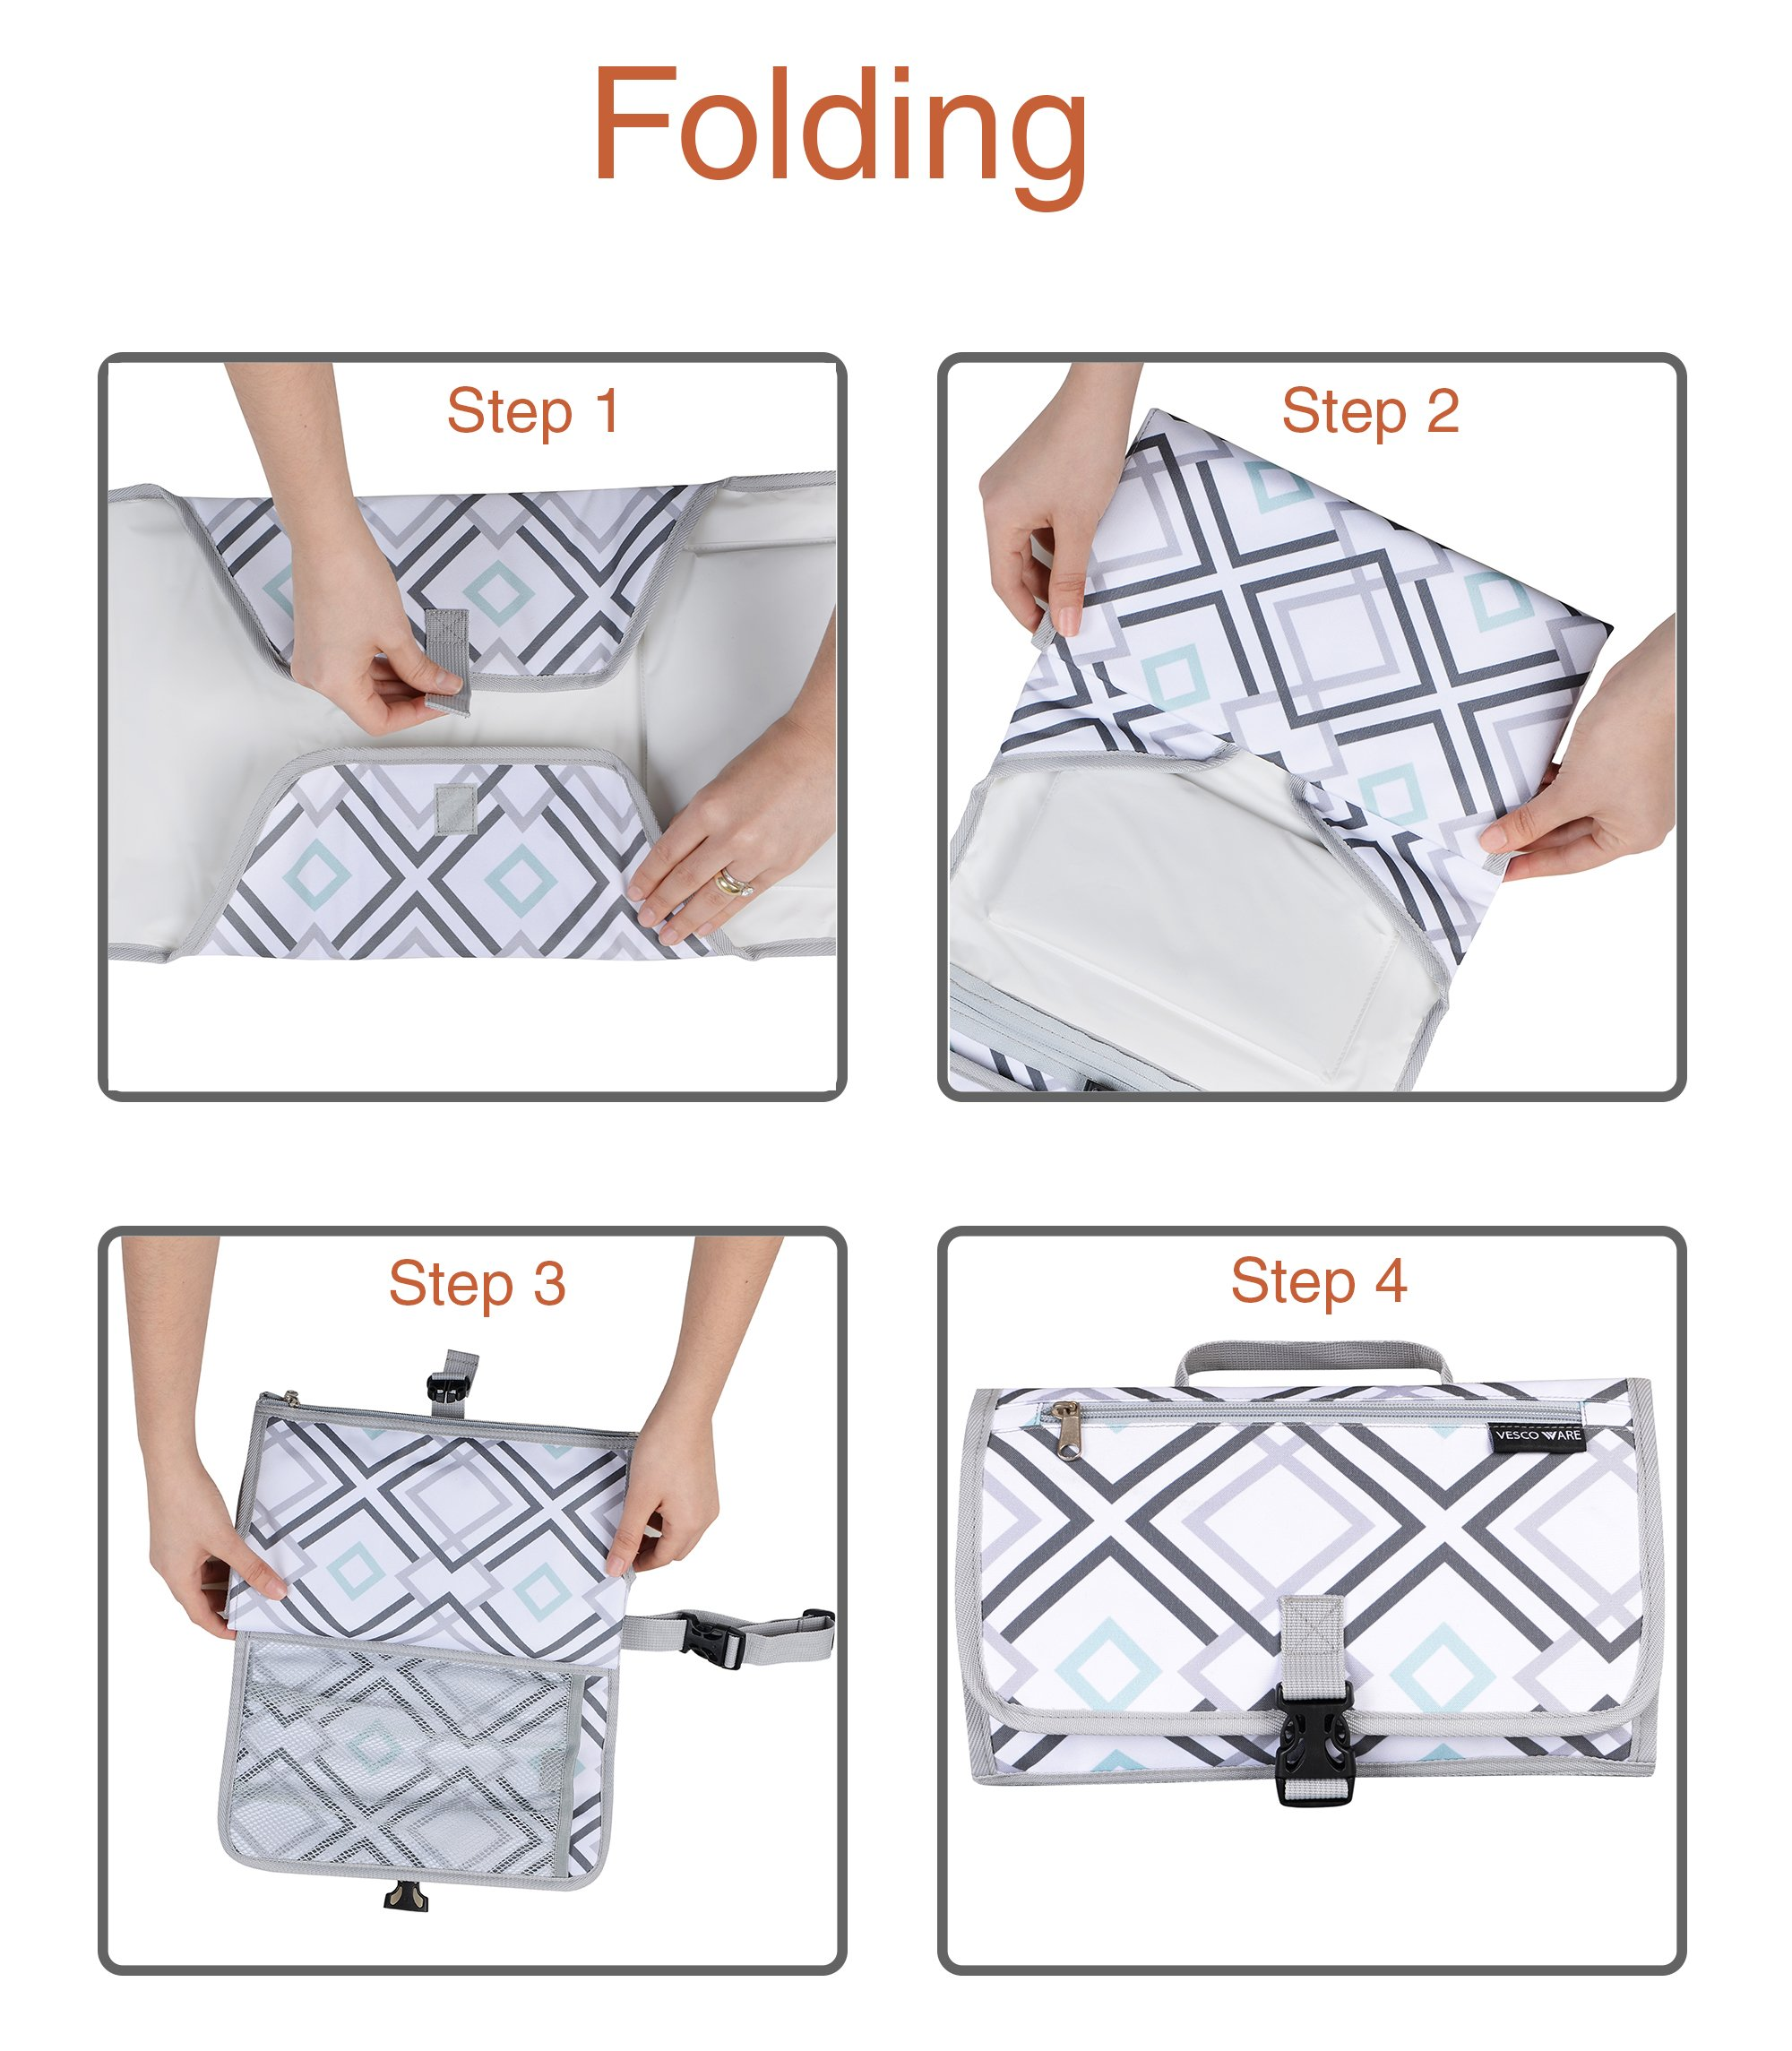 Portable Baby Changing Mat - Large Waterproof Diaper Changing Station - Padded Travel Pad with Head Cushion, 3 Pockets, Multi-Color by Vescoware (Image #6)